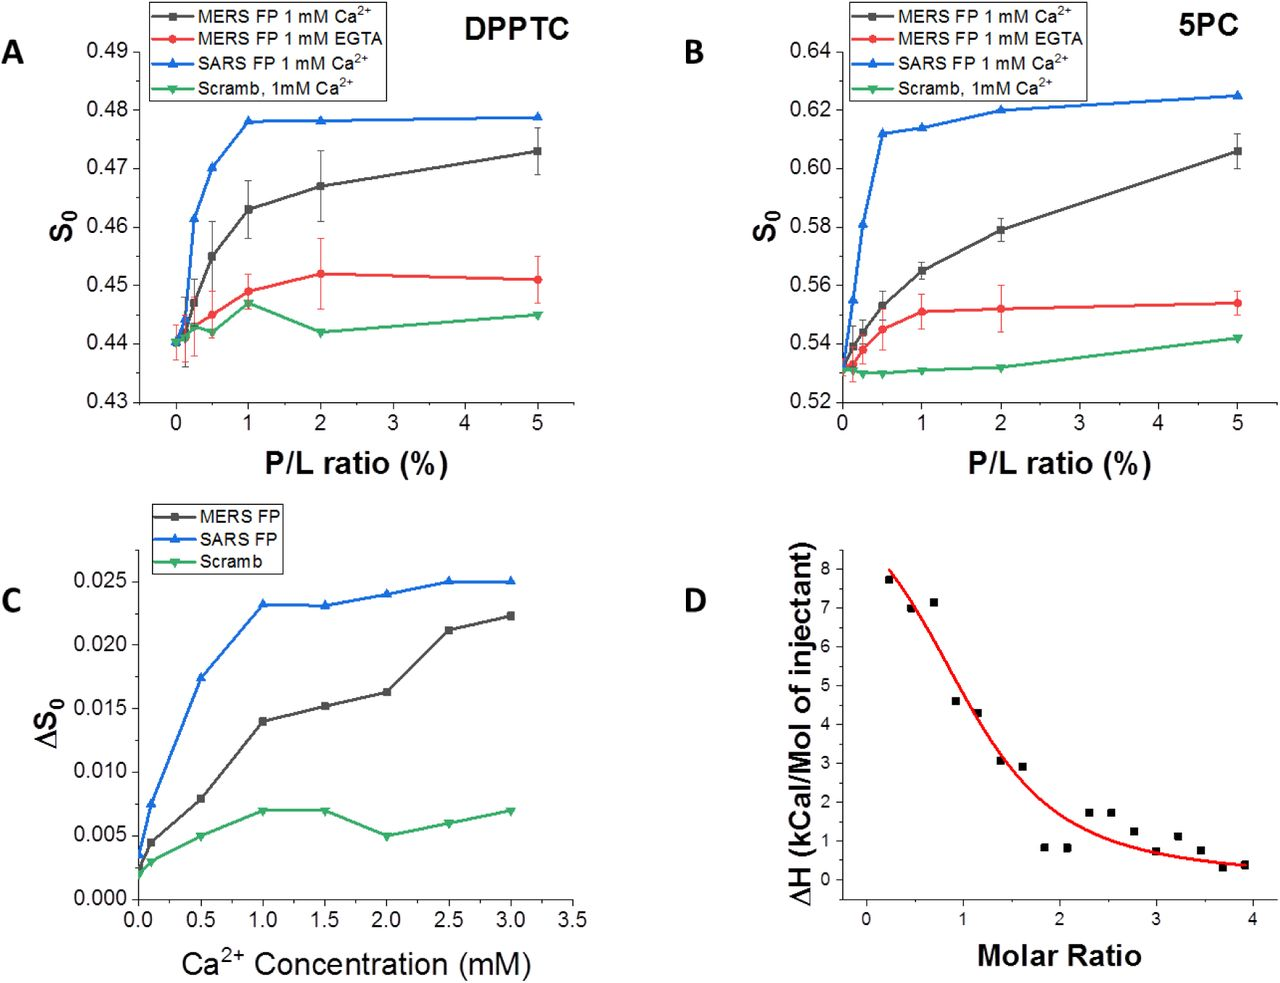 ESR and ITC analysis of the MERS-CoV FP. A-B. Plots of order parameters of DPPTC (A), and 5PC (B) versus peptide:lipid ratio (P/L ratio) of MERS FP or SARS FP in POPC/POPS/Chol=3/1/1 MLVs in buffer with 150 mM NaCl at 25°C. Black, MERS FP, 1 mM Ca 2+ and at pH 5; red, MERS FP calcium-less buffer with 1 mM EGTA and at pH 5; blue, SARS FP, 1 mM Ca 2+ at pH 5, and purple, scrambled peptide, 1 mM Ca 2+ and at pH 5. (C) Plot of difference of order parameters of DPPTC with and without 1% peptide binding (ΔS0) versus Ca 2+ concentration in POPC/POPS/Chol=3/1/1 MLVs in buffer with 150 mM NaCl at 25°C. Black, MERS FP; blue, SARS FP; and green, scrambled peptide. The experiments were typically repeated two to three times. The typical uncertainties found for S 0 ranges from 1-5 × 10 −3 , while the uncertainties from repeated experiments were 5-8 × 10 −3 or less than ±0.01. We show the standard deviation bars in Panel A and B. (D) ITC analysis of Ca 2+ binding to MERS-CoV FP. The peptides were titrated with CaCl 2 . The integrated data represent the enthalpy change per mole of injectant, ΔH, in units of kJ/mol as a function of the molar ratio. Data points and fitted data are overlaid. The fitting is based on the one-site model.